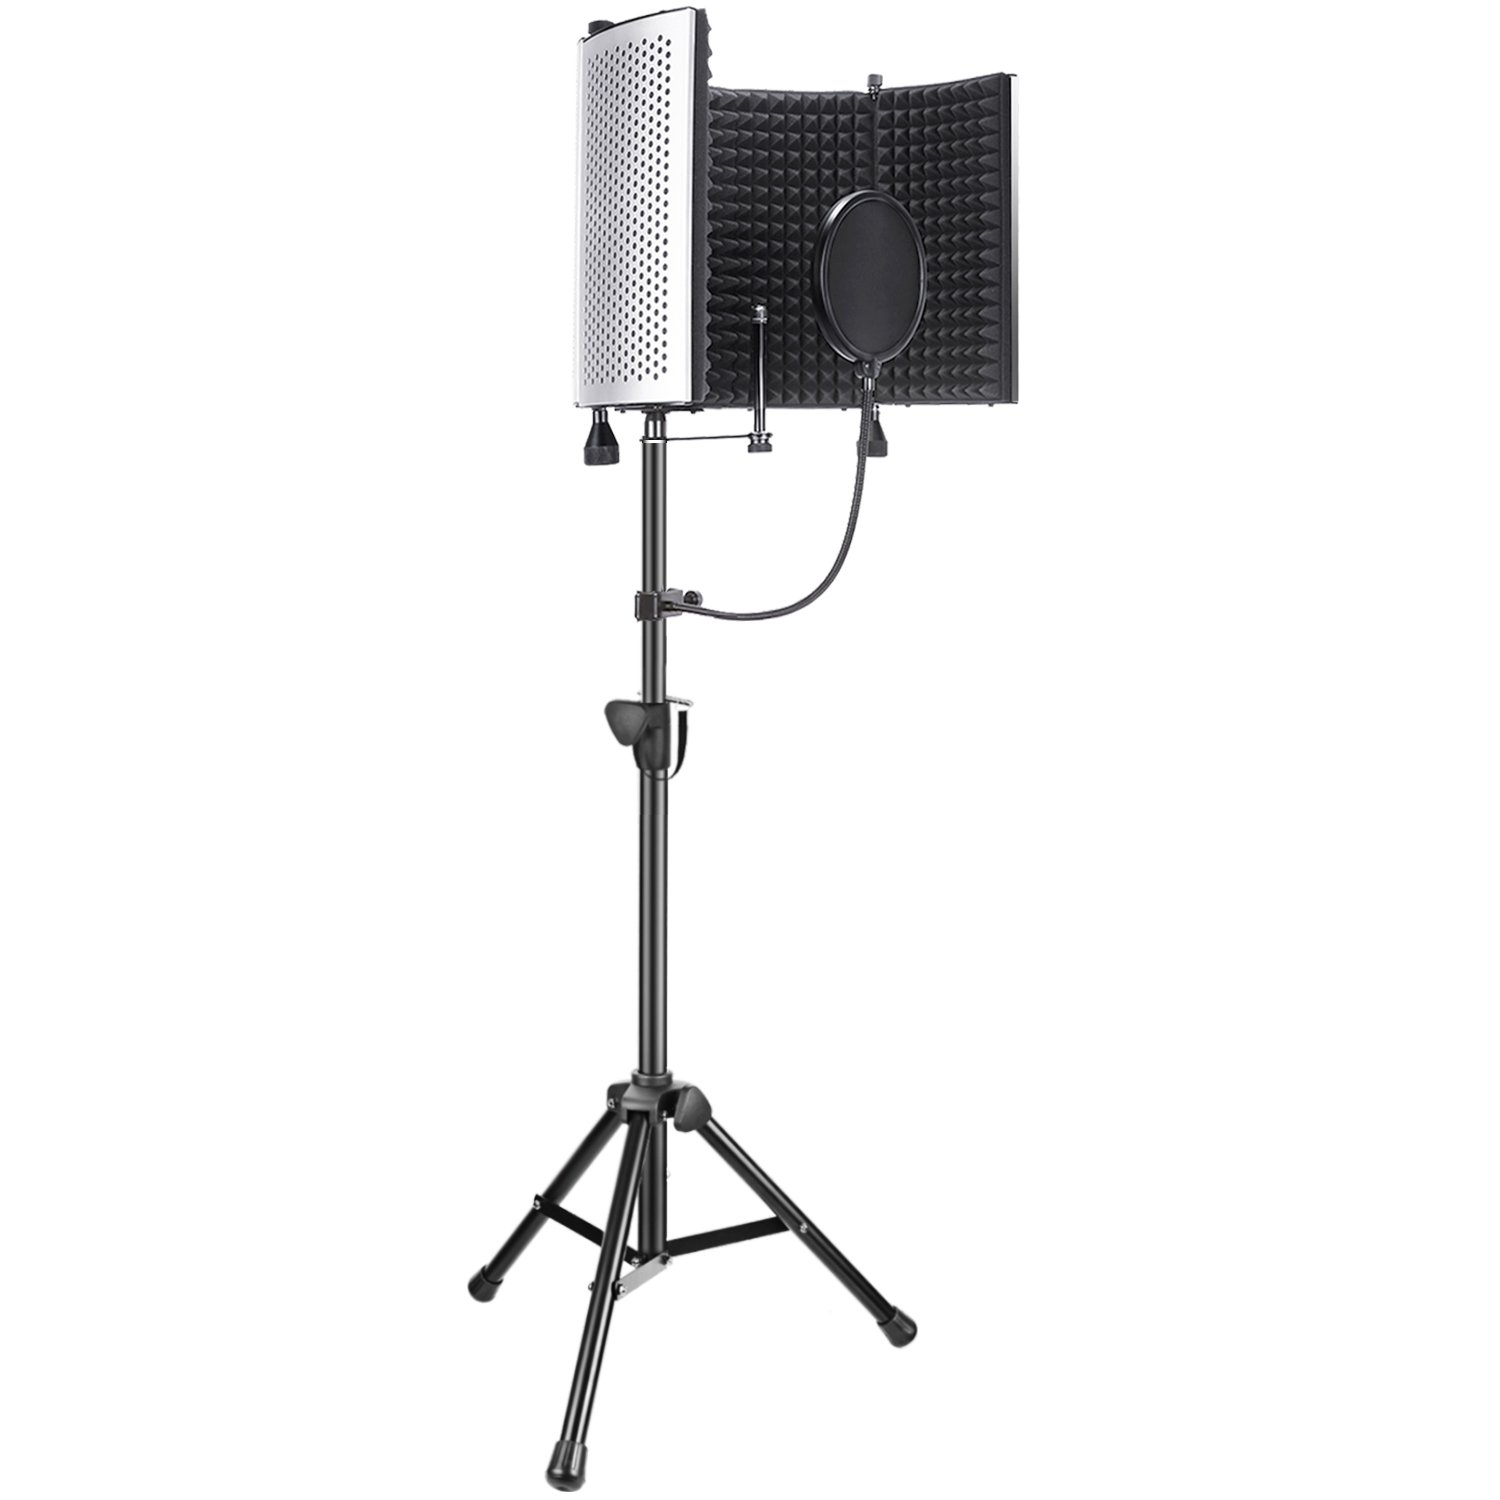 Neewer Professional Microphone Studio Recording Accessories Include: NW-5 Microphone Isolation Panel, Adjustable Wind Screen Bracket Stand and Pop Filter for Vocal Acoustic Recording and Podcasting